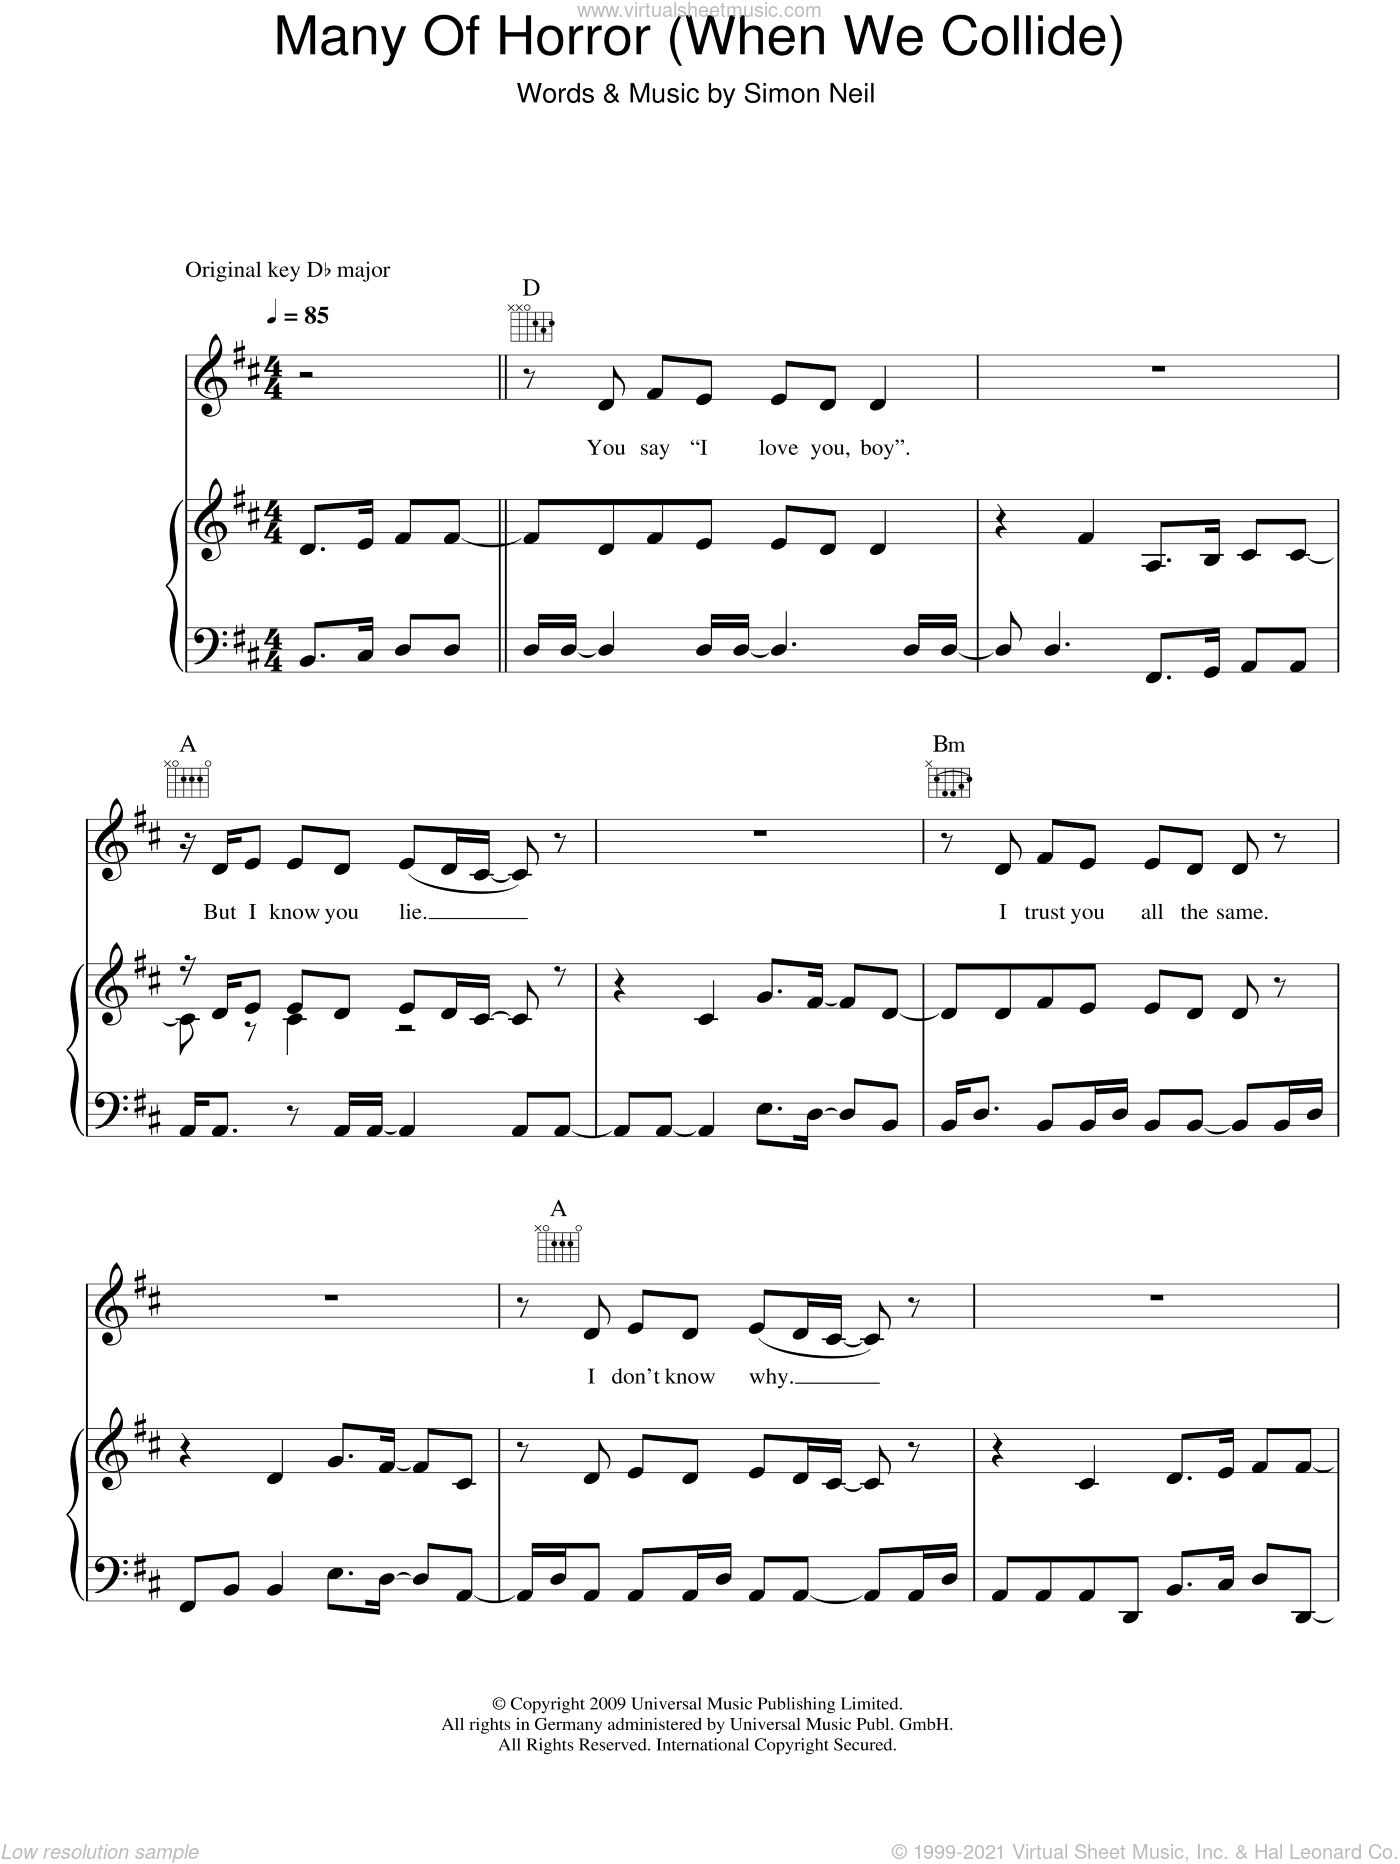 Many Of Horror (When We Collide) sheet music for voice, piano or guitar by Biffy Clyro and Simon Neil, intermediate skill level